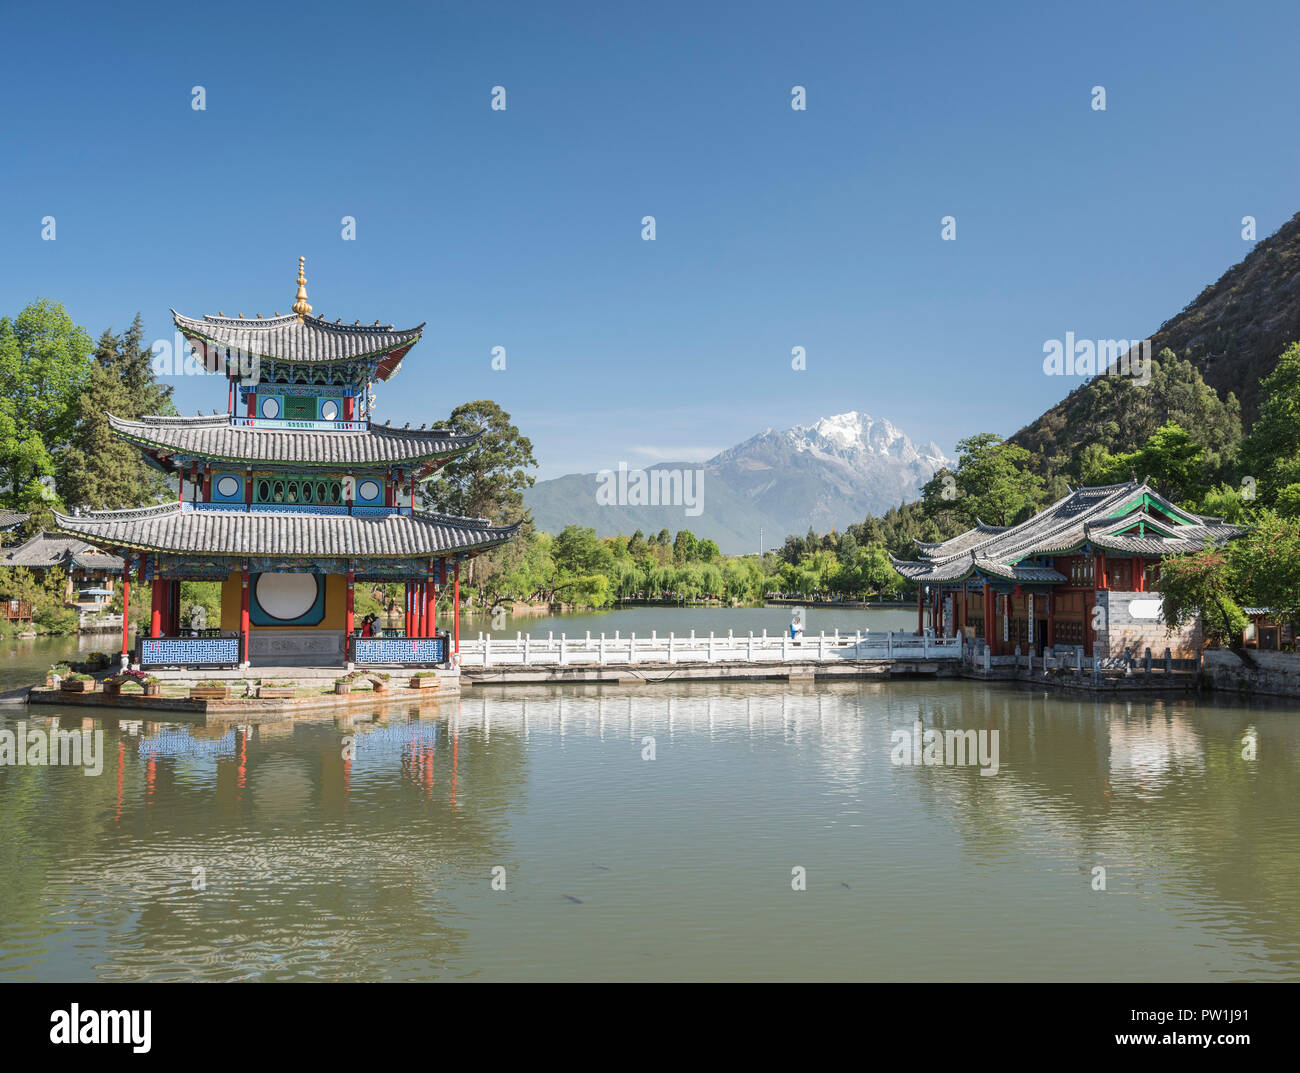 Looking across the Black Dragon Pool towards the Jade Dragon Snow Mountains of South West China Kunming. - Stock Image